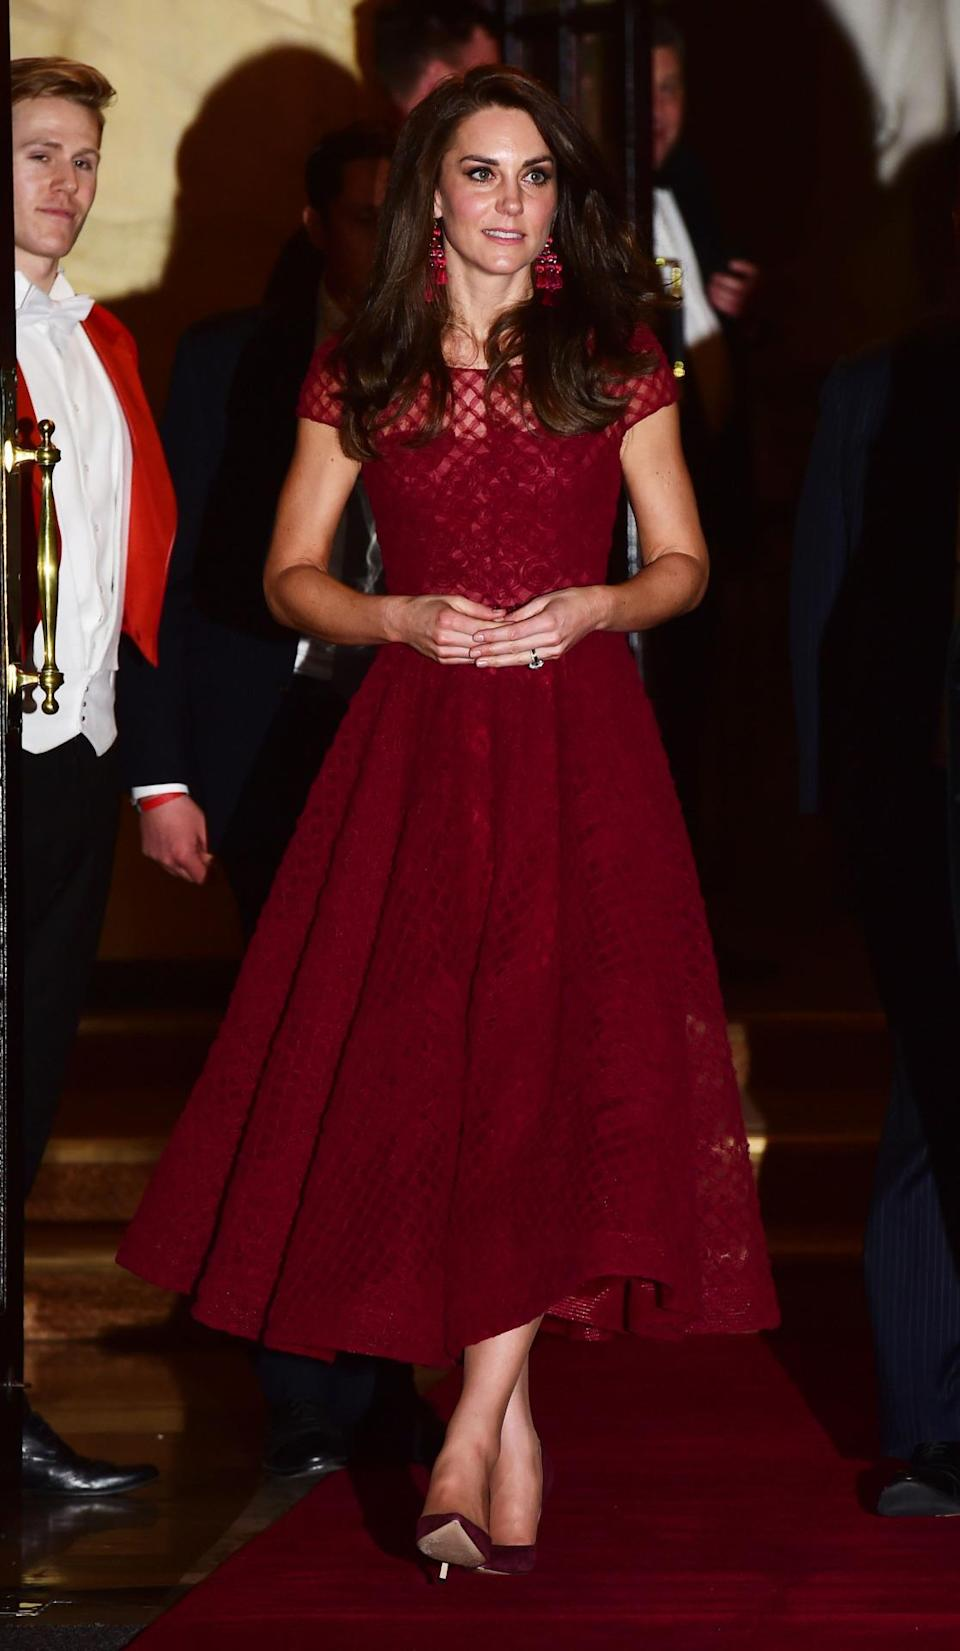 <p>Kate donned the colour of the season for the opening night of West End musical, <i>42nd Street</i>. Wearing a claret midi-length dress by Marchesa Notte (that cost £1,105), the Duchess opted for some seriously fashion-forward accessories including a pair of pom pom statement earrings from Kate Spade. Gianvito Rossi pumps and a matching Mulberry clutch topped off the look. </p><p><i>[Photo: PA]</i></p>